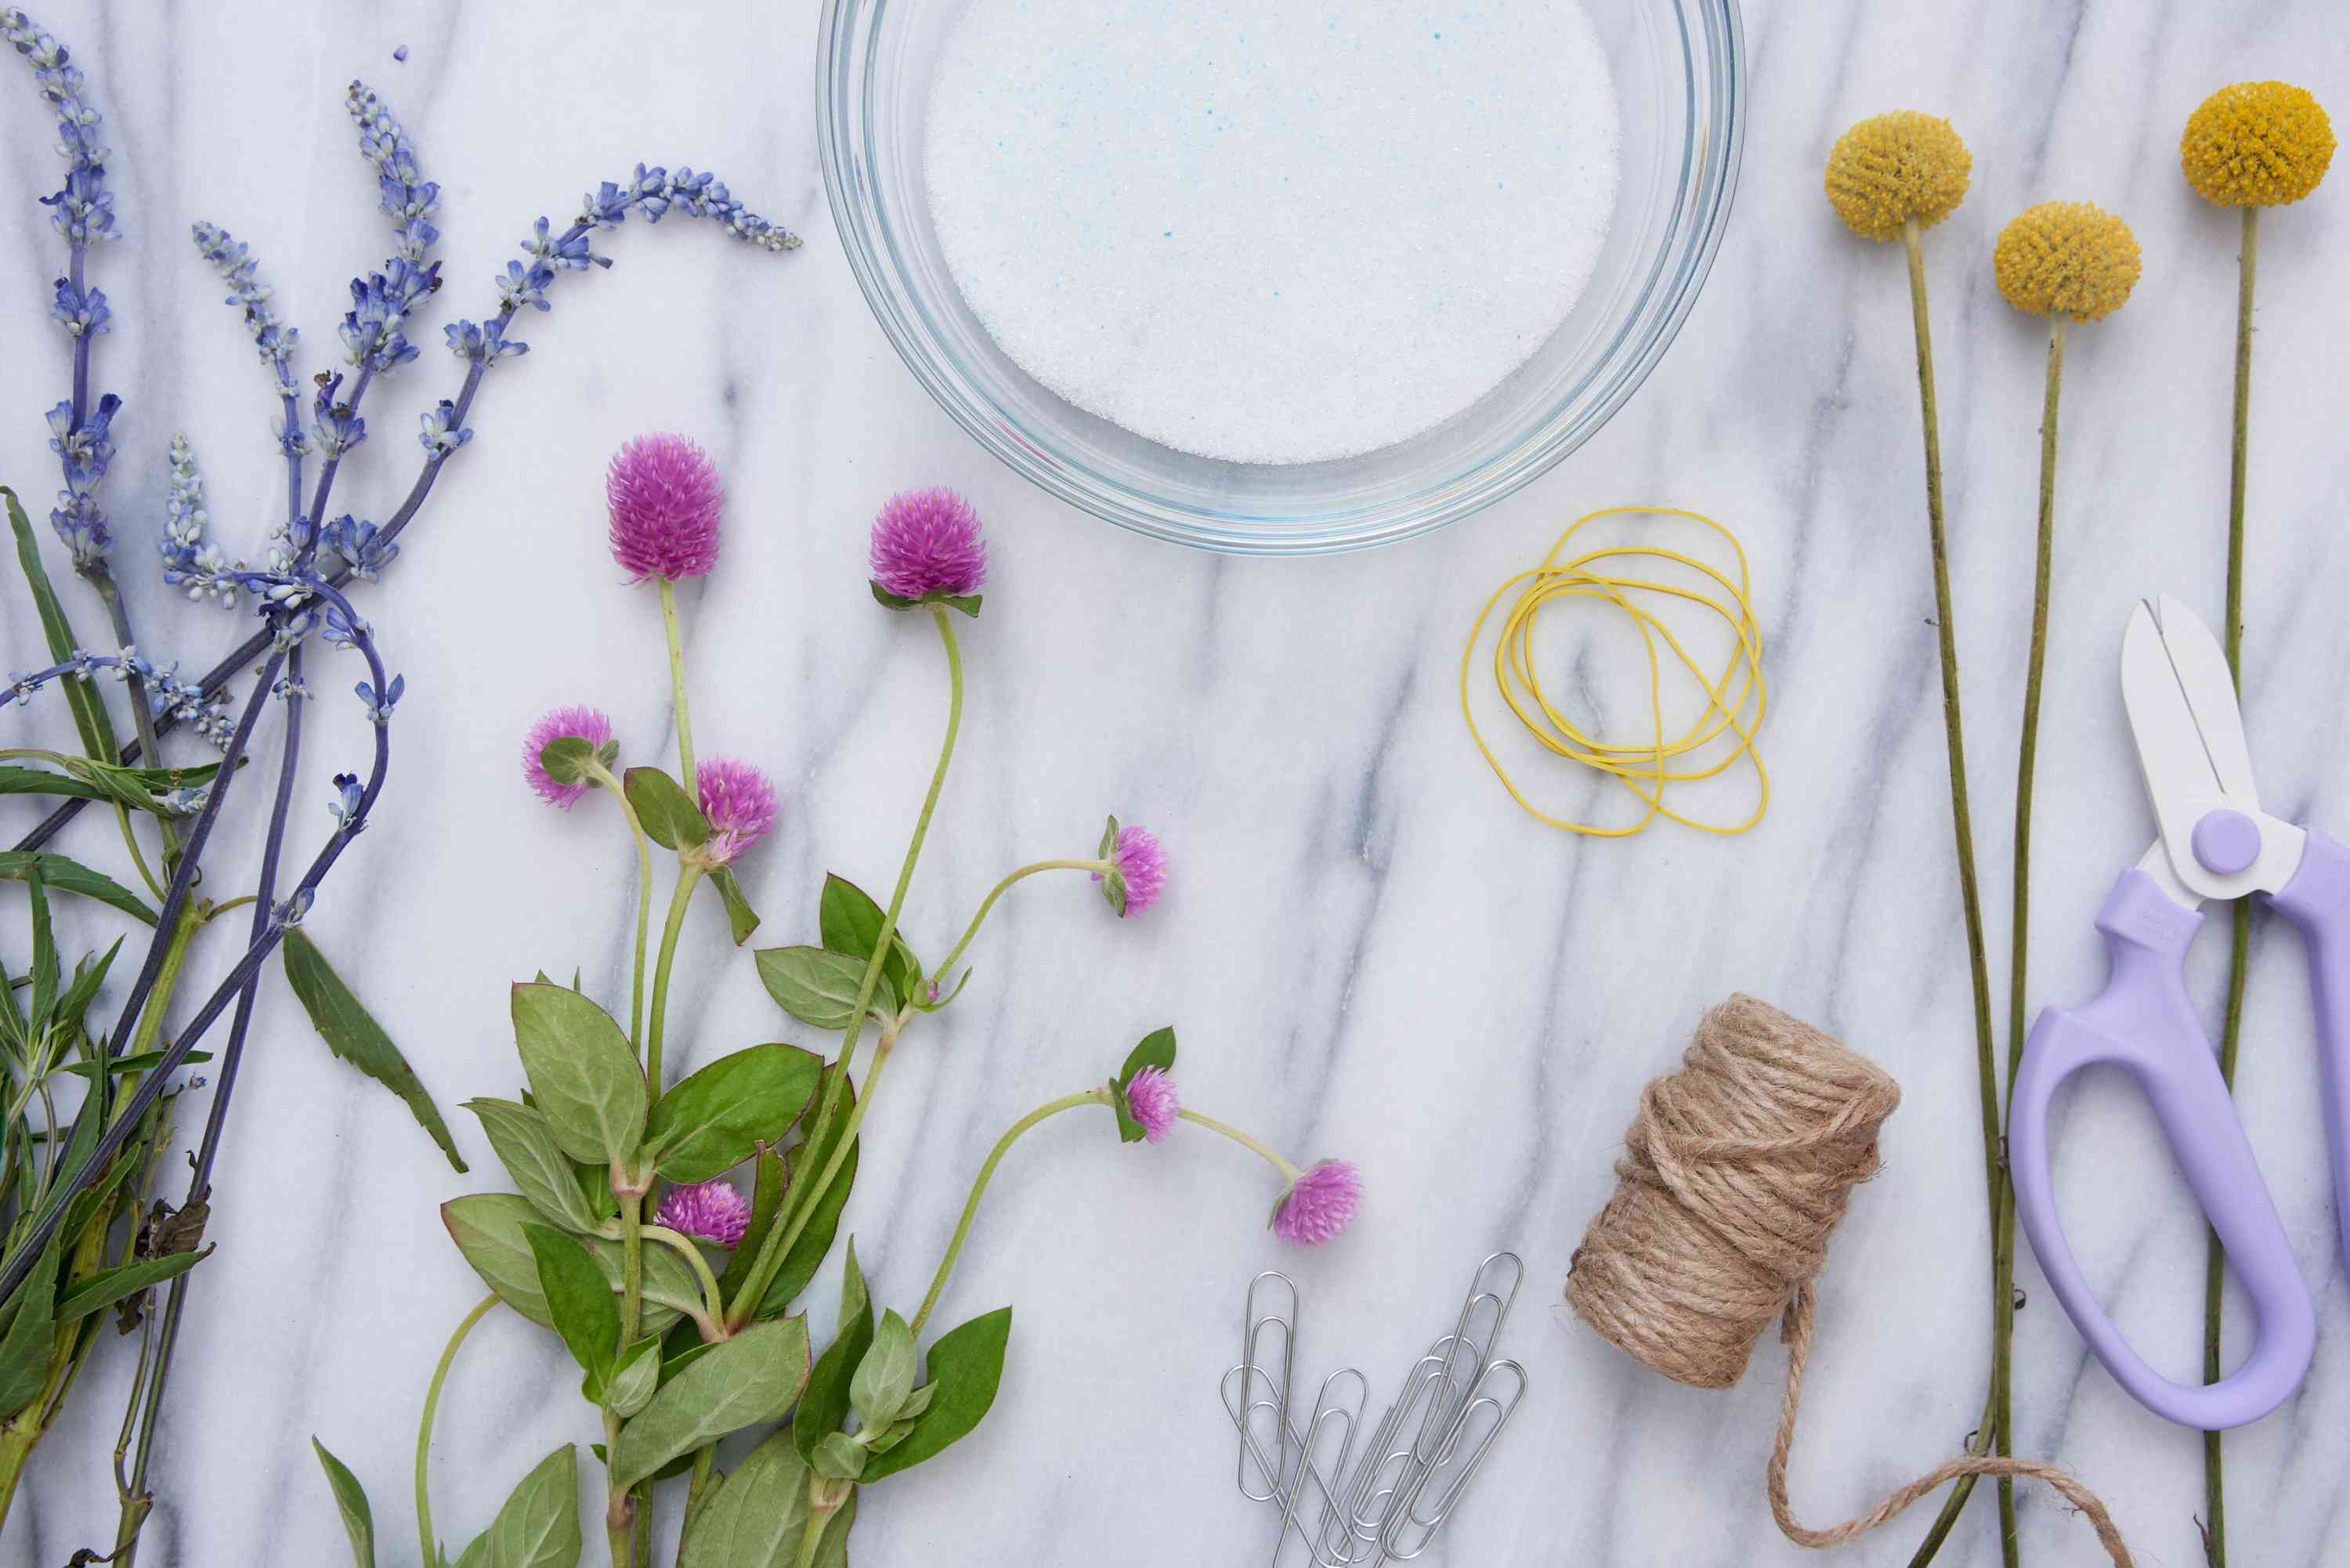 the materials for flower drying